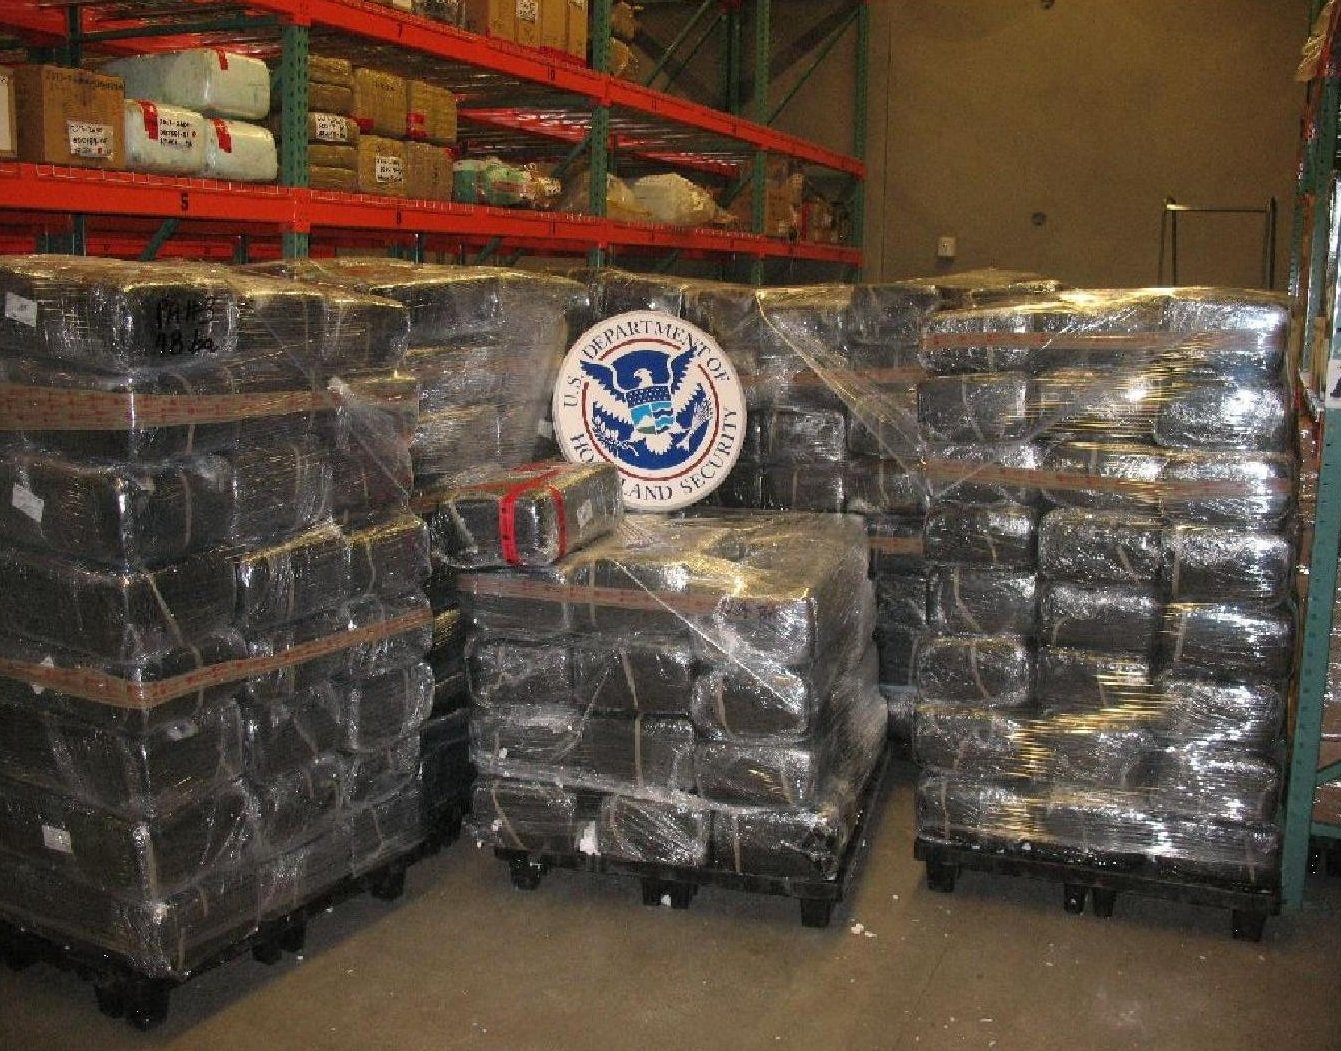 (Source: U.S. Customs and Border Protection)